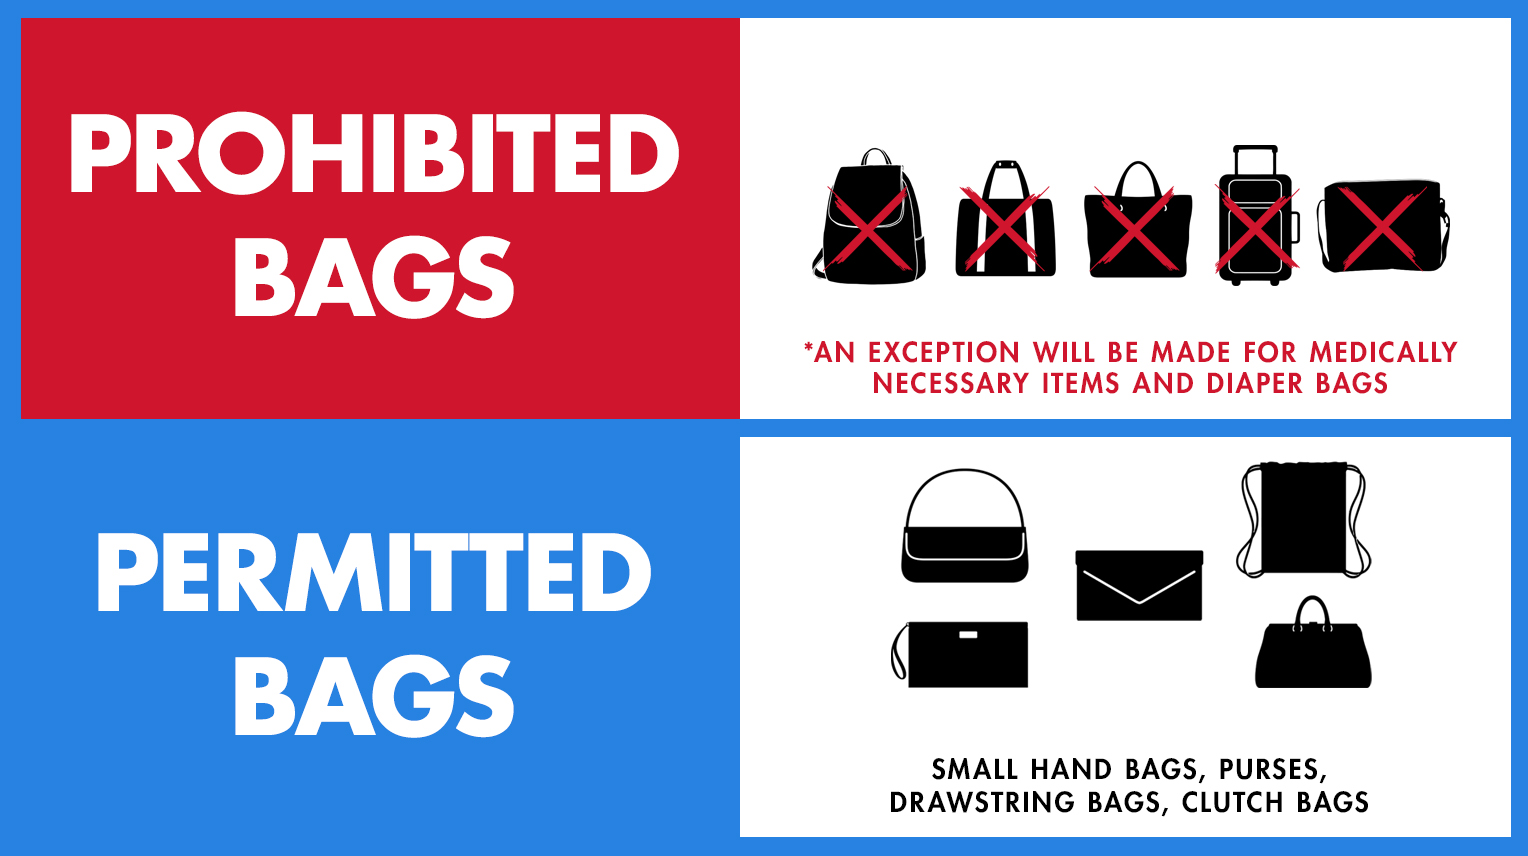 Blue Cross Arena bag policy